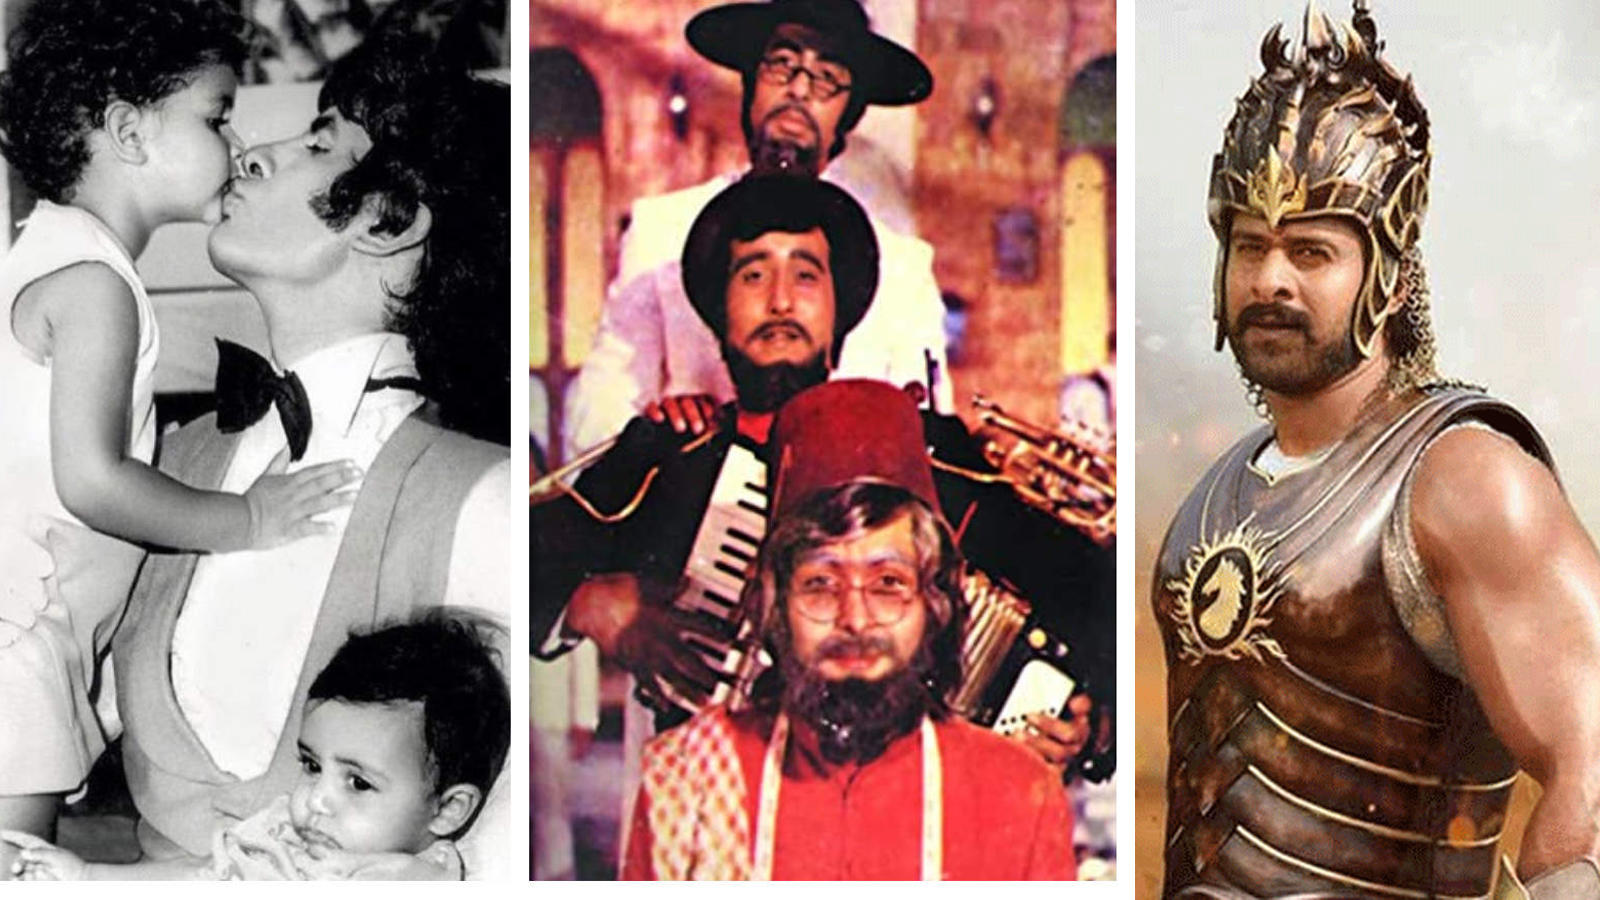 amitabh-bachchan-celebrates-43-glorious-years-of-amar-akbar-anthony-says-inflation-adjusted-it-crosses-collections-of-bahubali-2